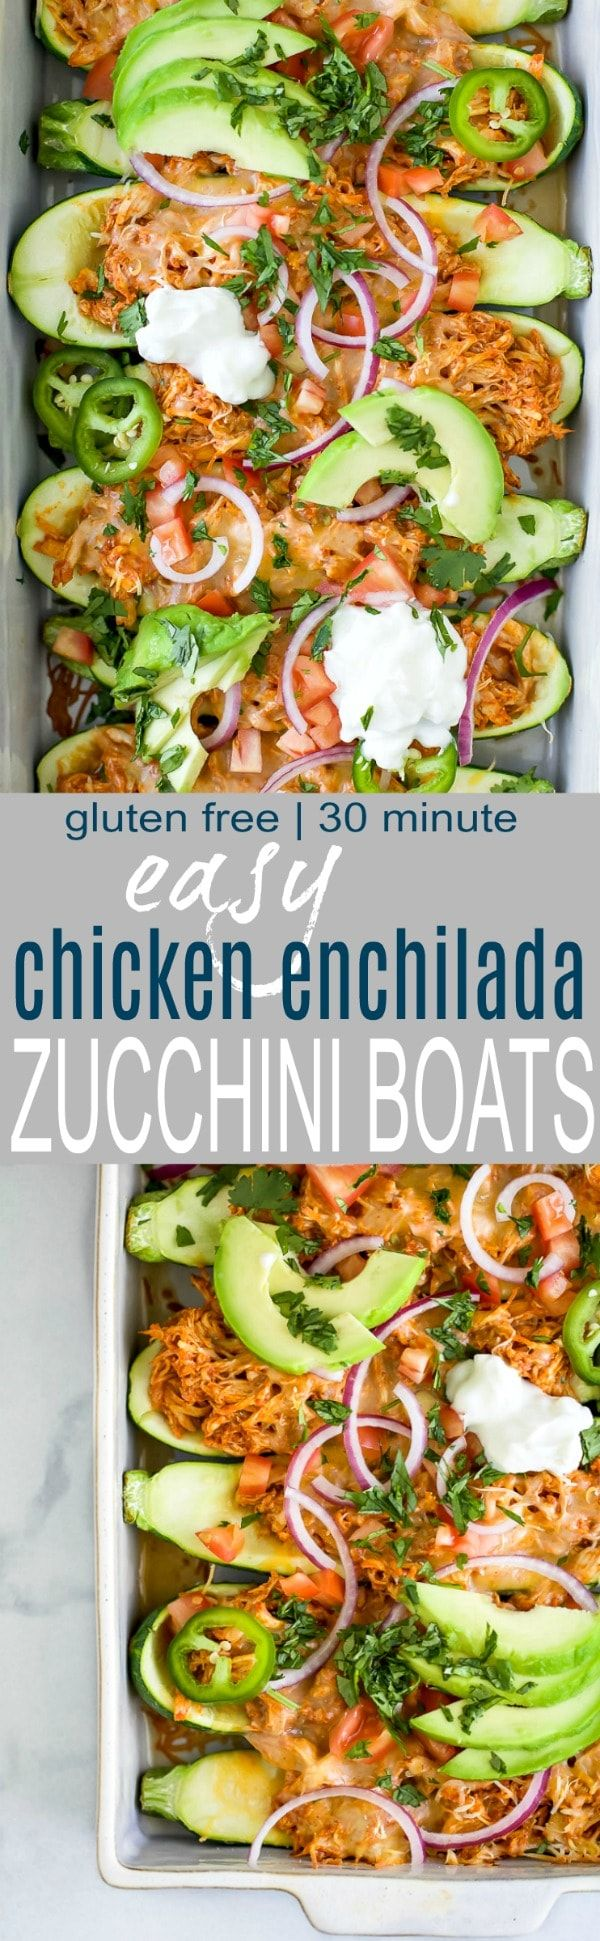 Easy Chicken Enchilada Zucchini Boats with red chili sauce and melted cheese  A 30 minute meal thats gluten free low carb high protein and perfect for a weeknight di...